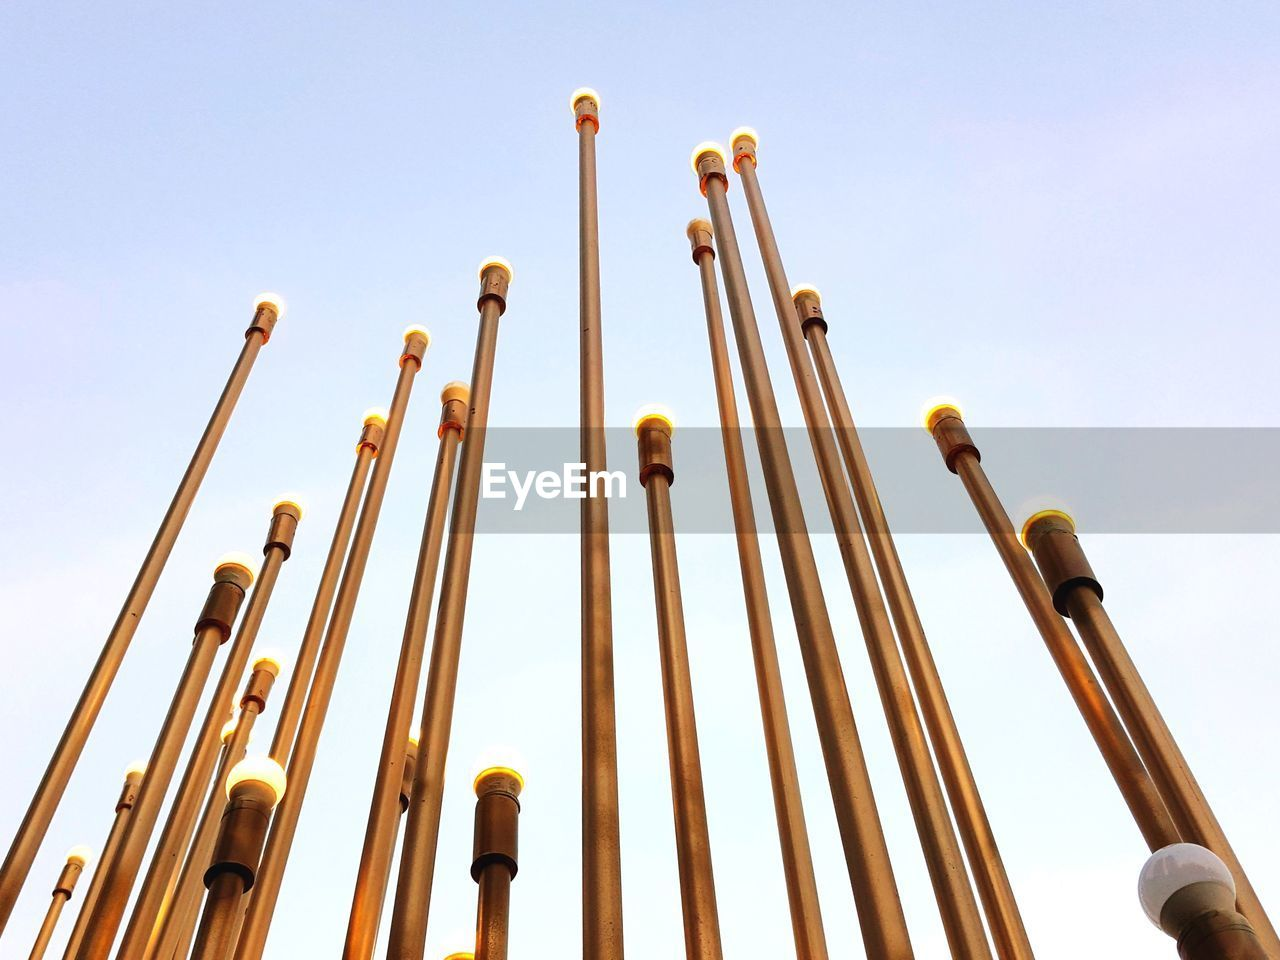 no people, sky, metal, low angle view, still life, yellow, large group of objects, clear sky, nature, day, close-up, focus on foreground, wood - material, side by side, gold colored, rod, blue, sunlight, outdoors, studio shot